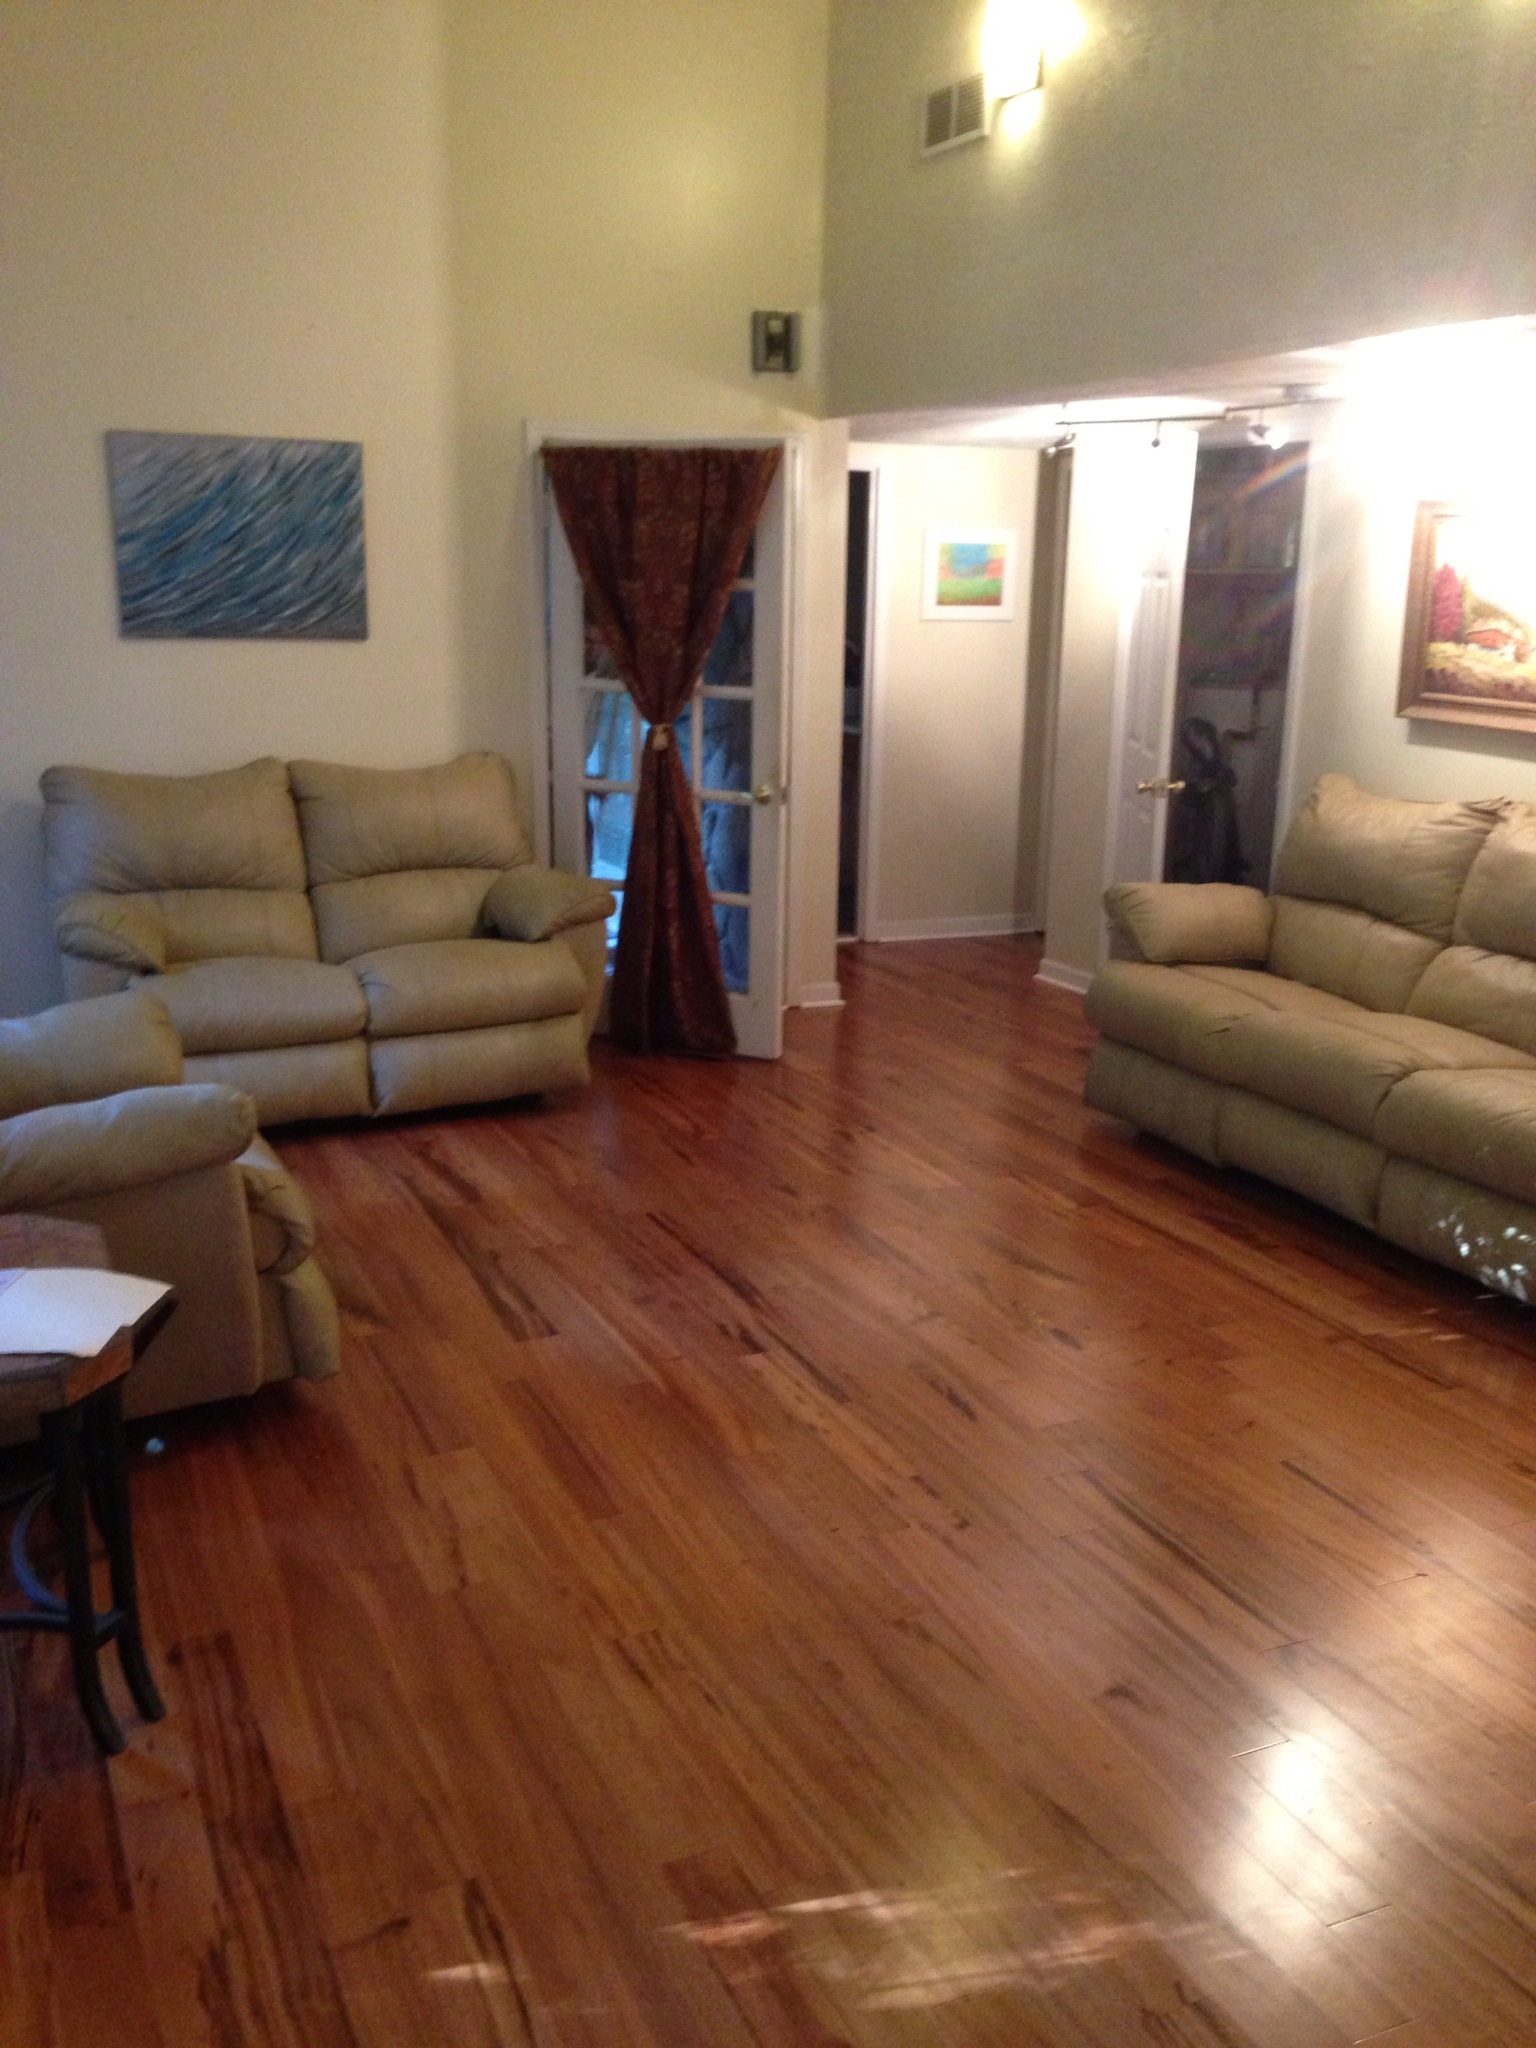 hardness wood pecan hickory koa hardwood floor designs brazilian hardnessfloor flooring